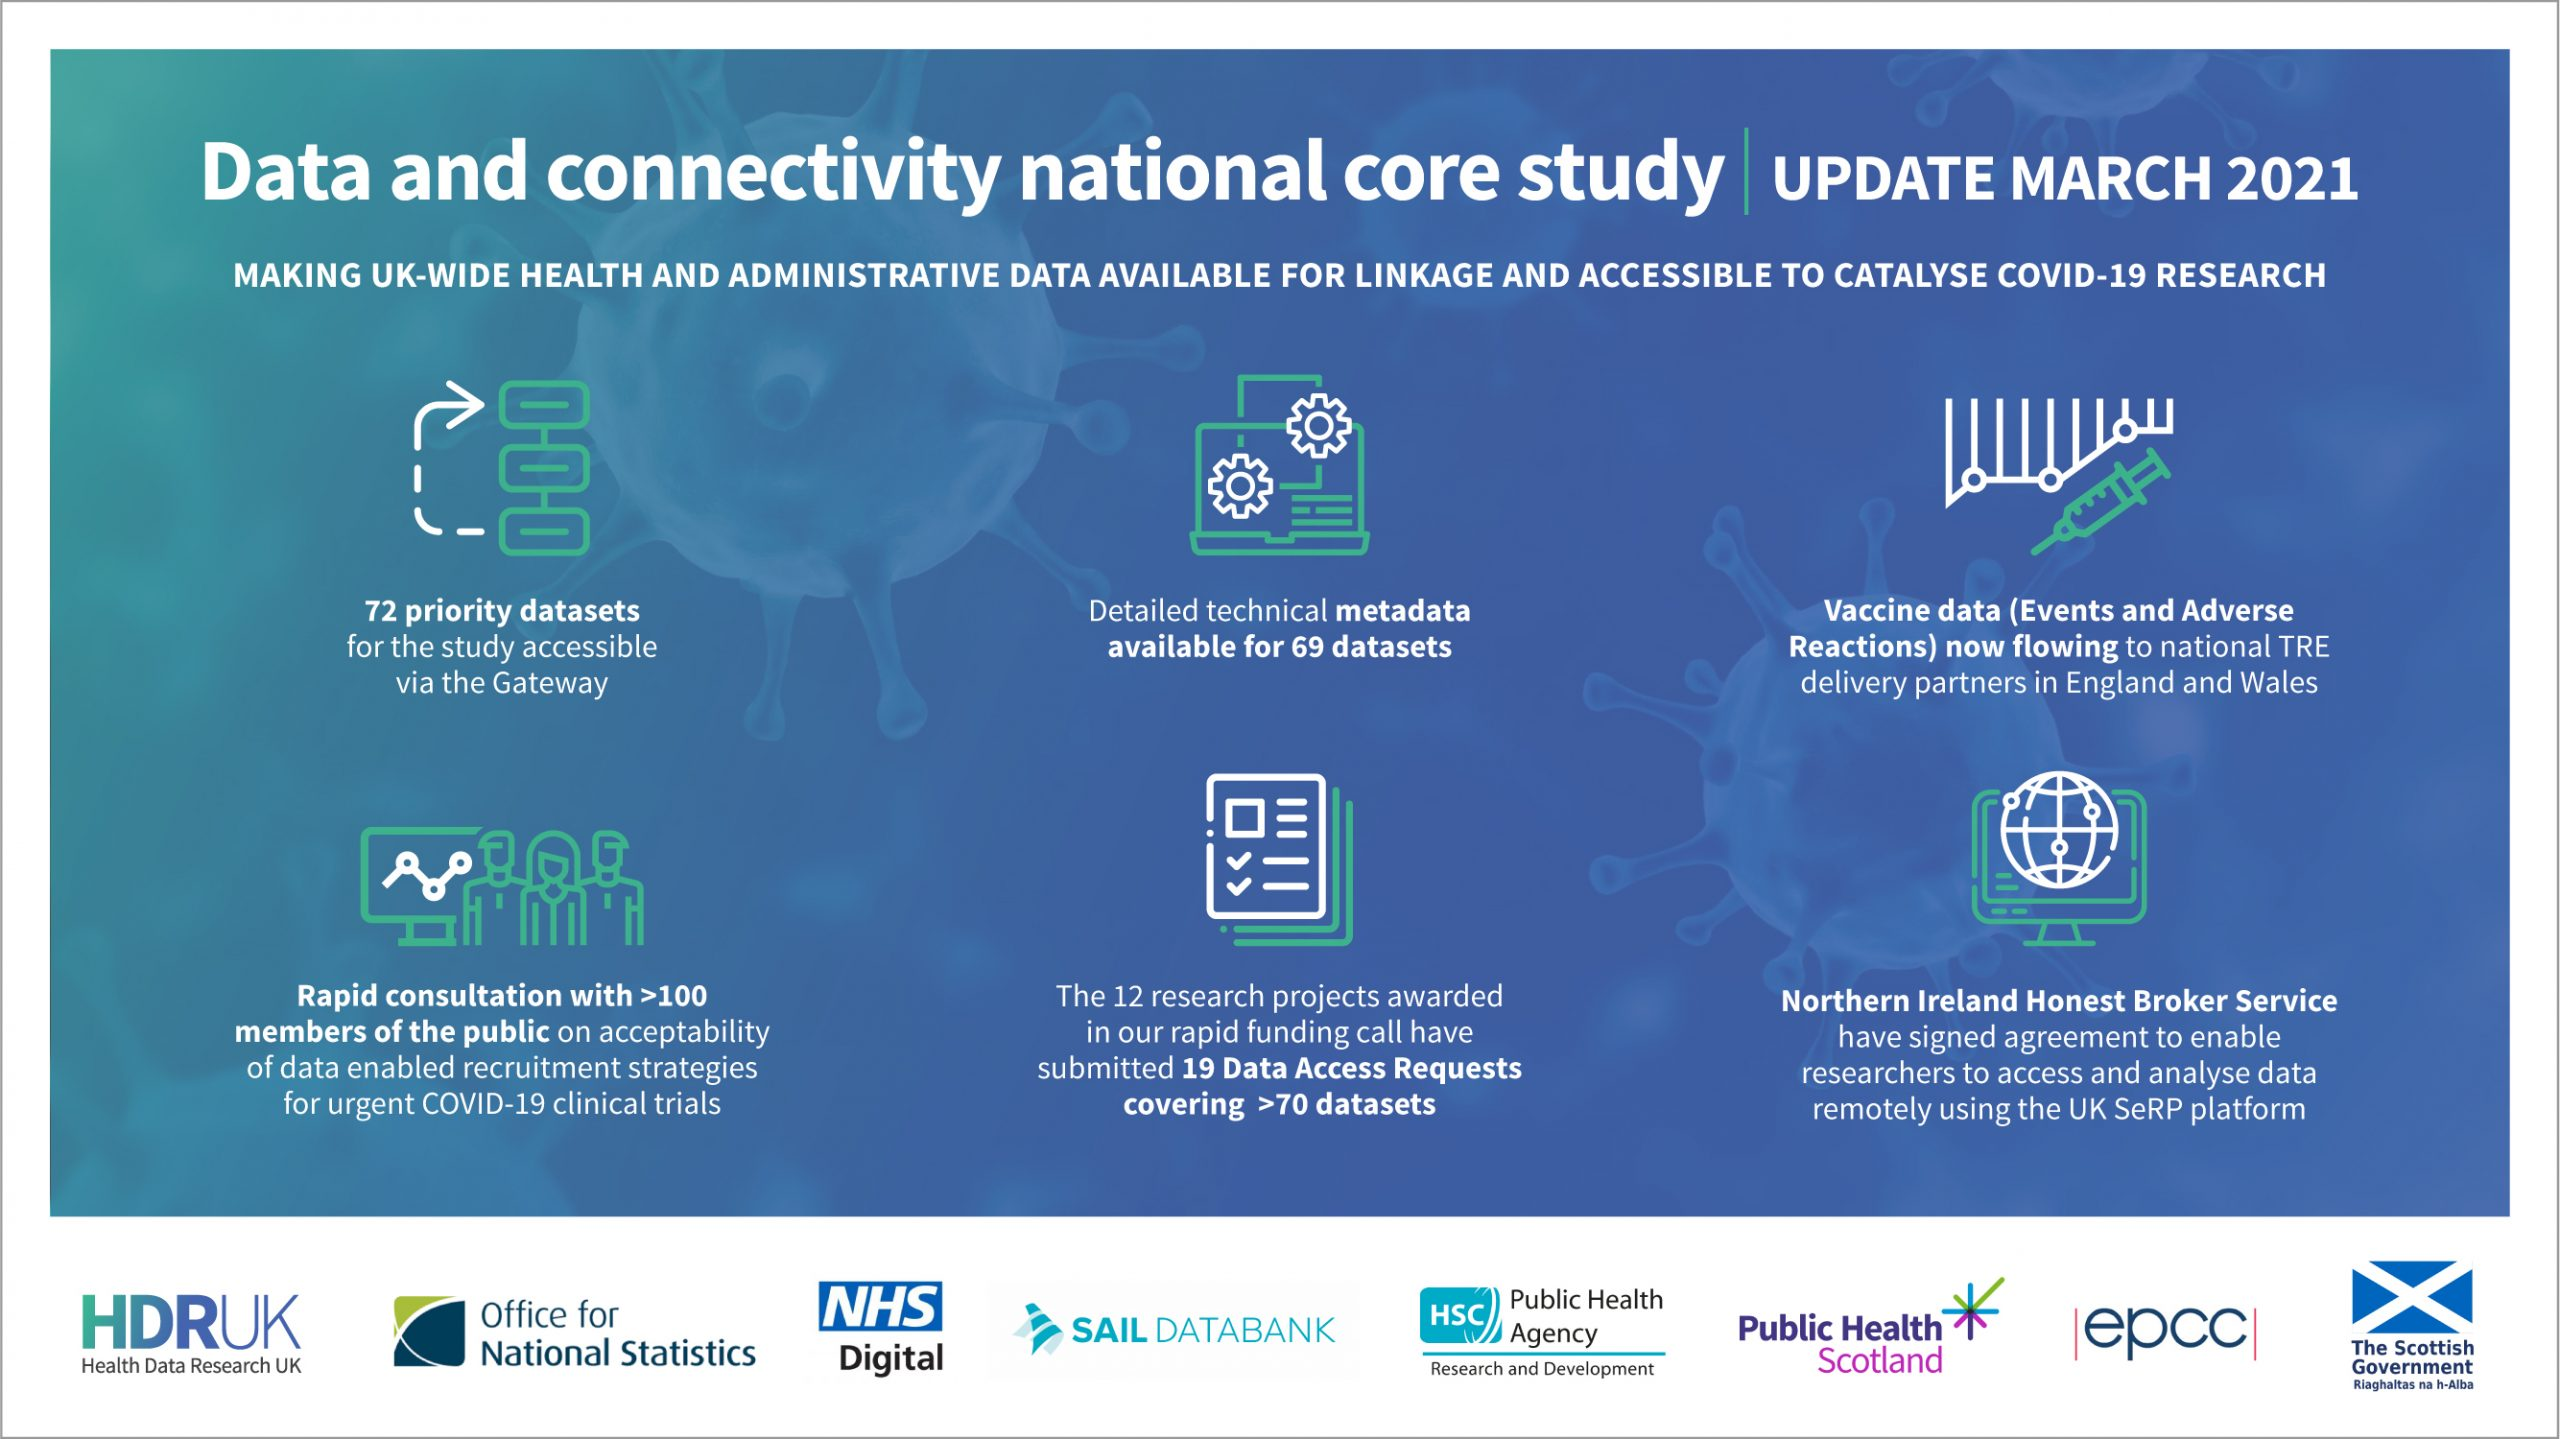 Data and Connectivity National Core Study - March 2021